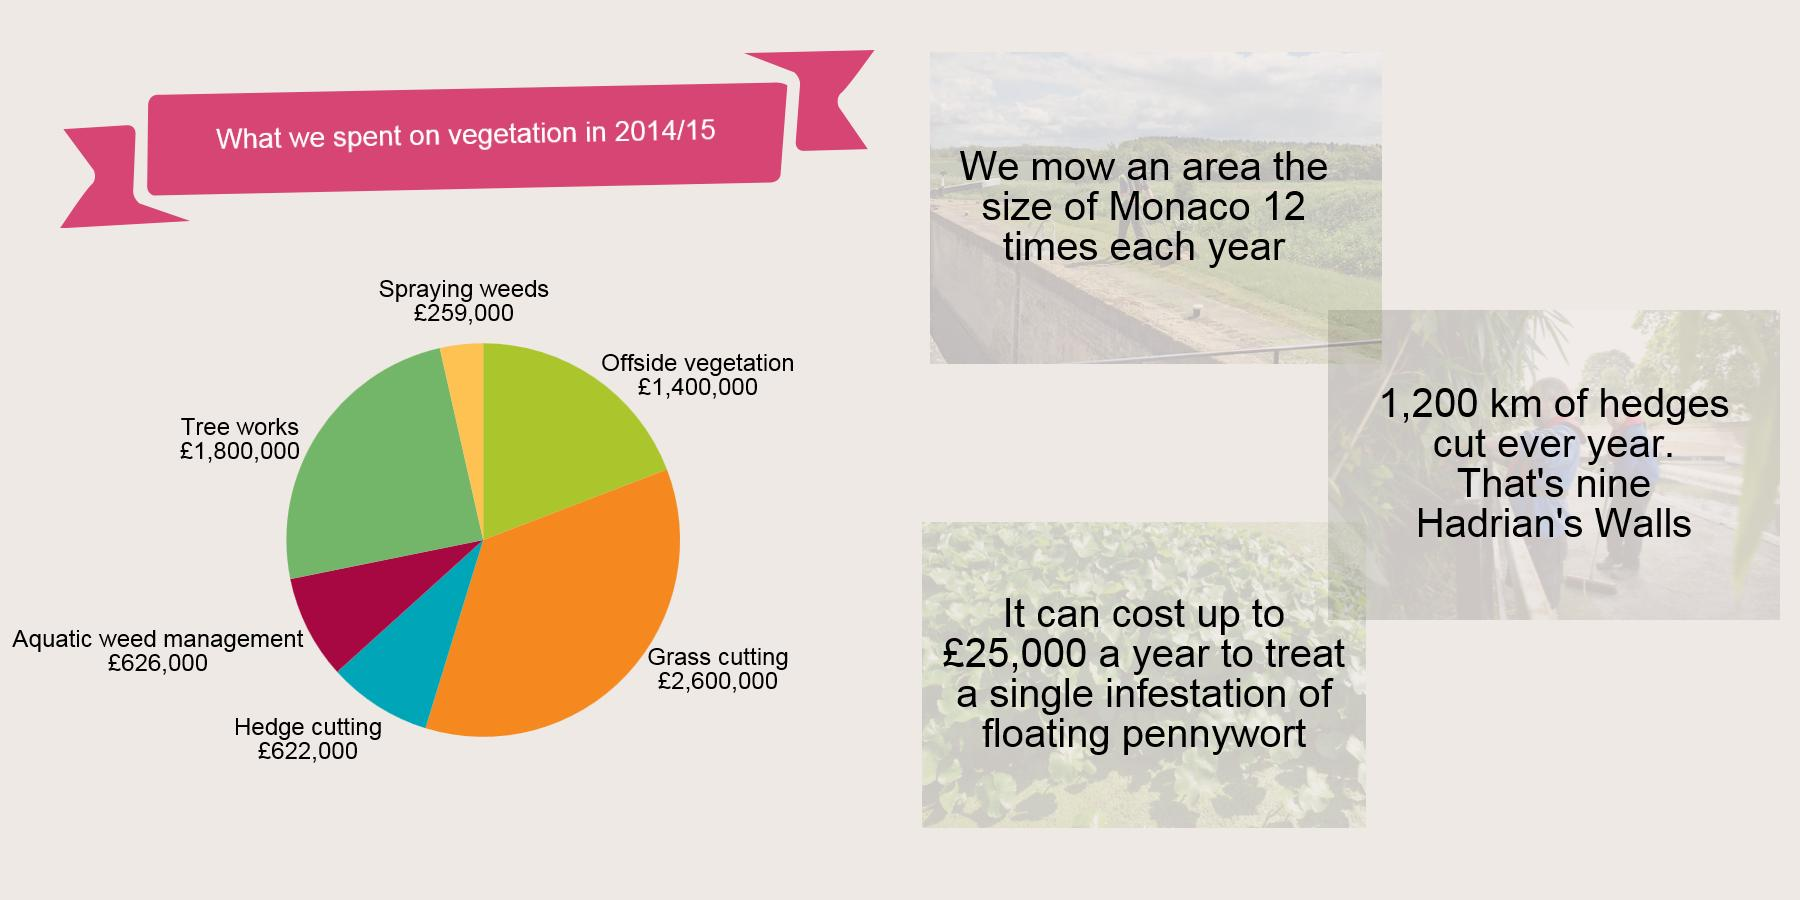 An infographic showing what we've spent on vegetation in 2014/15